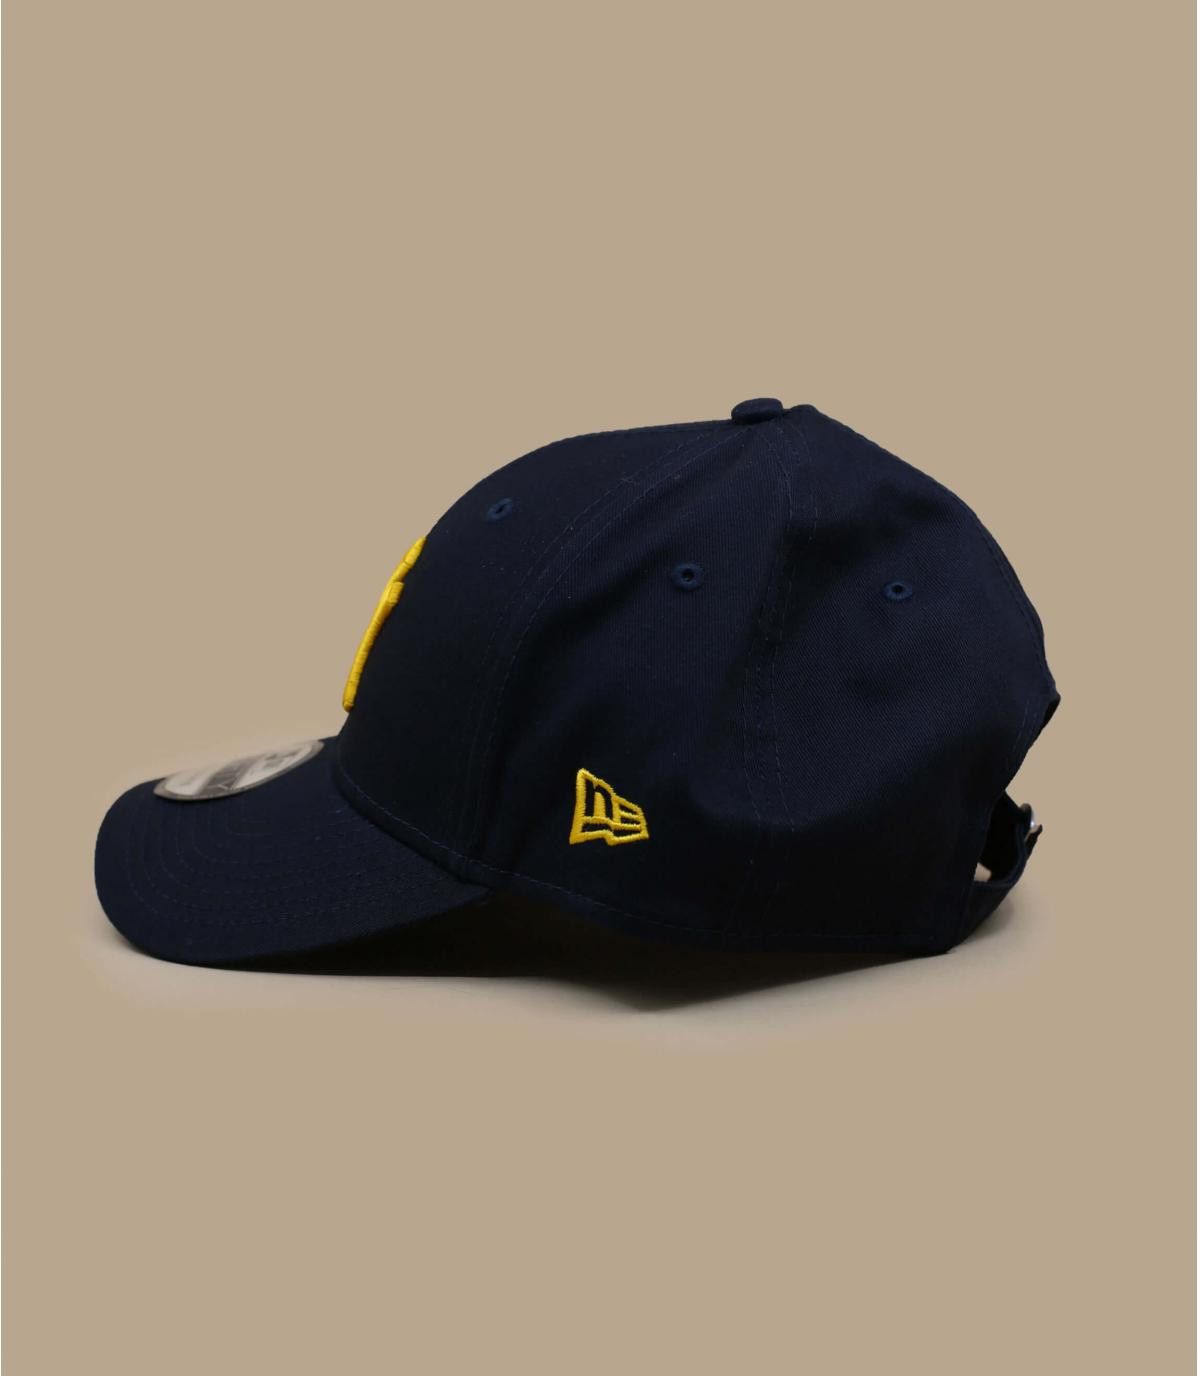 Détails Casquette Infill 940 NY navy - image 3